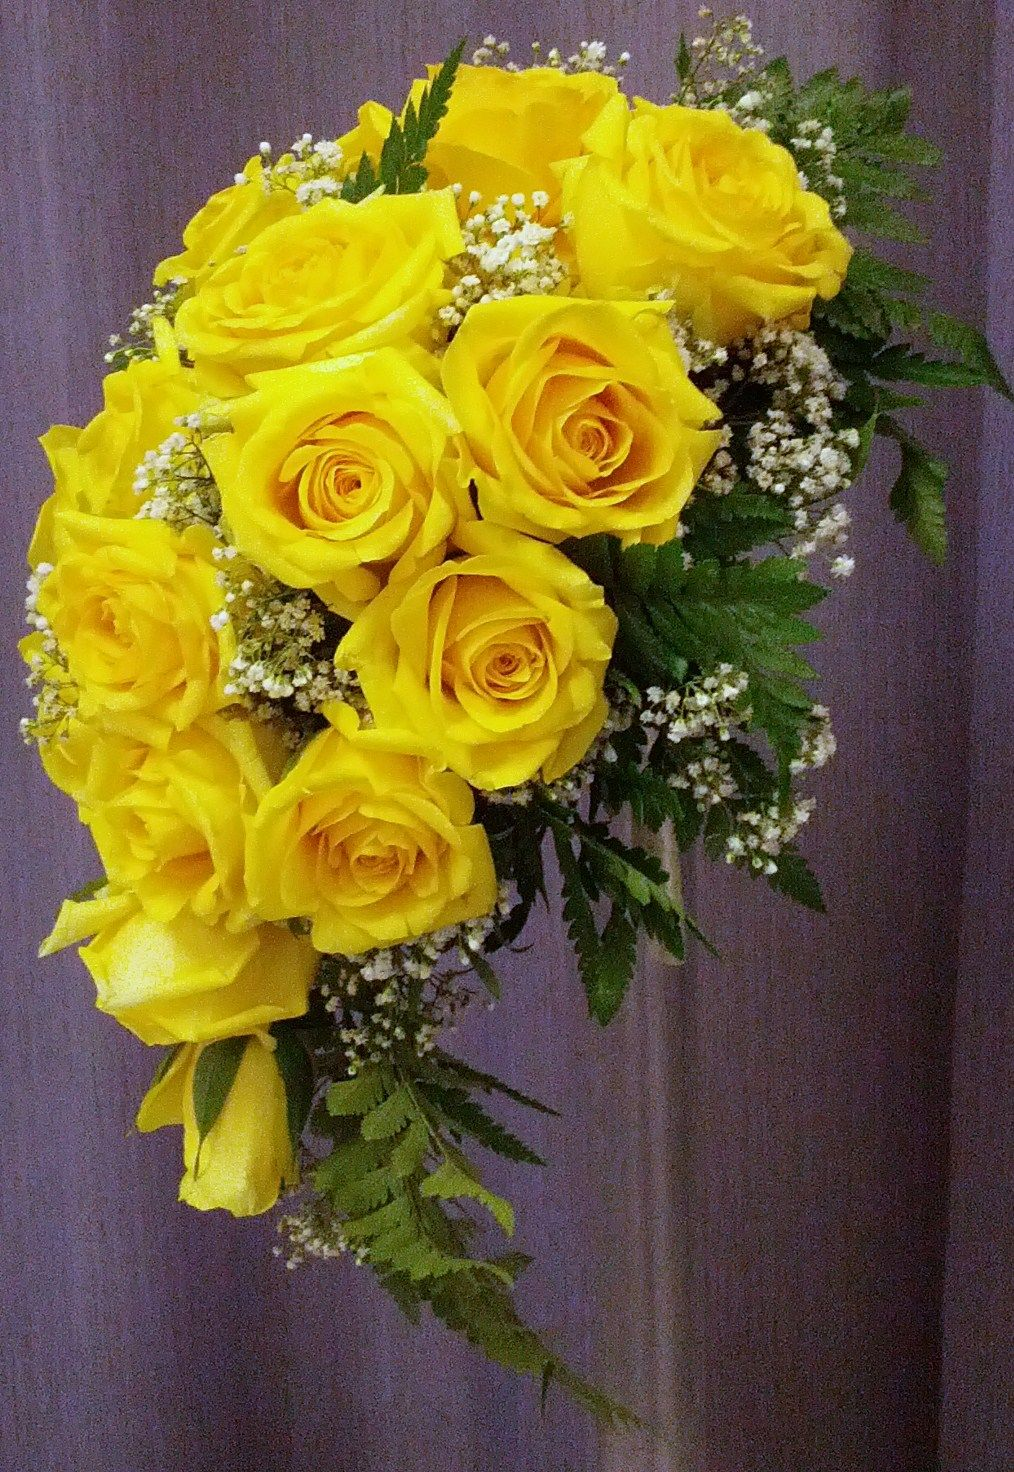 Cascade Bridal Bouquet with Yellow Roses and Baby's Breath